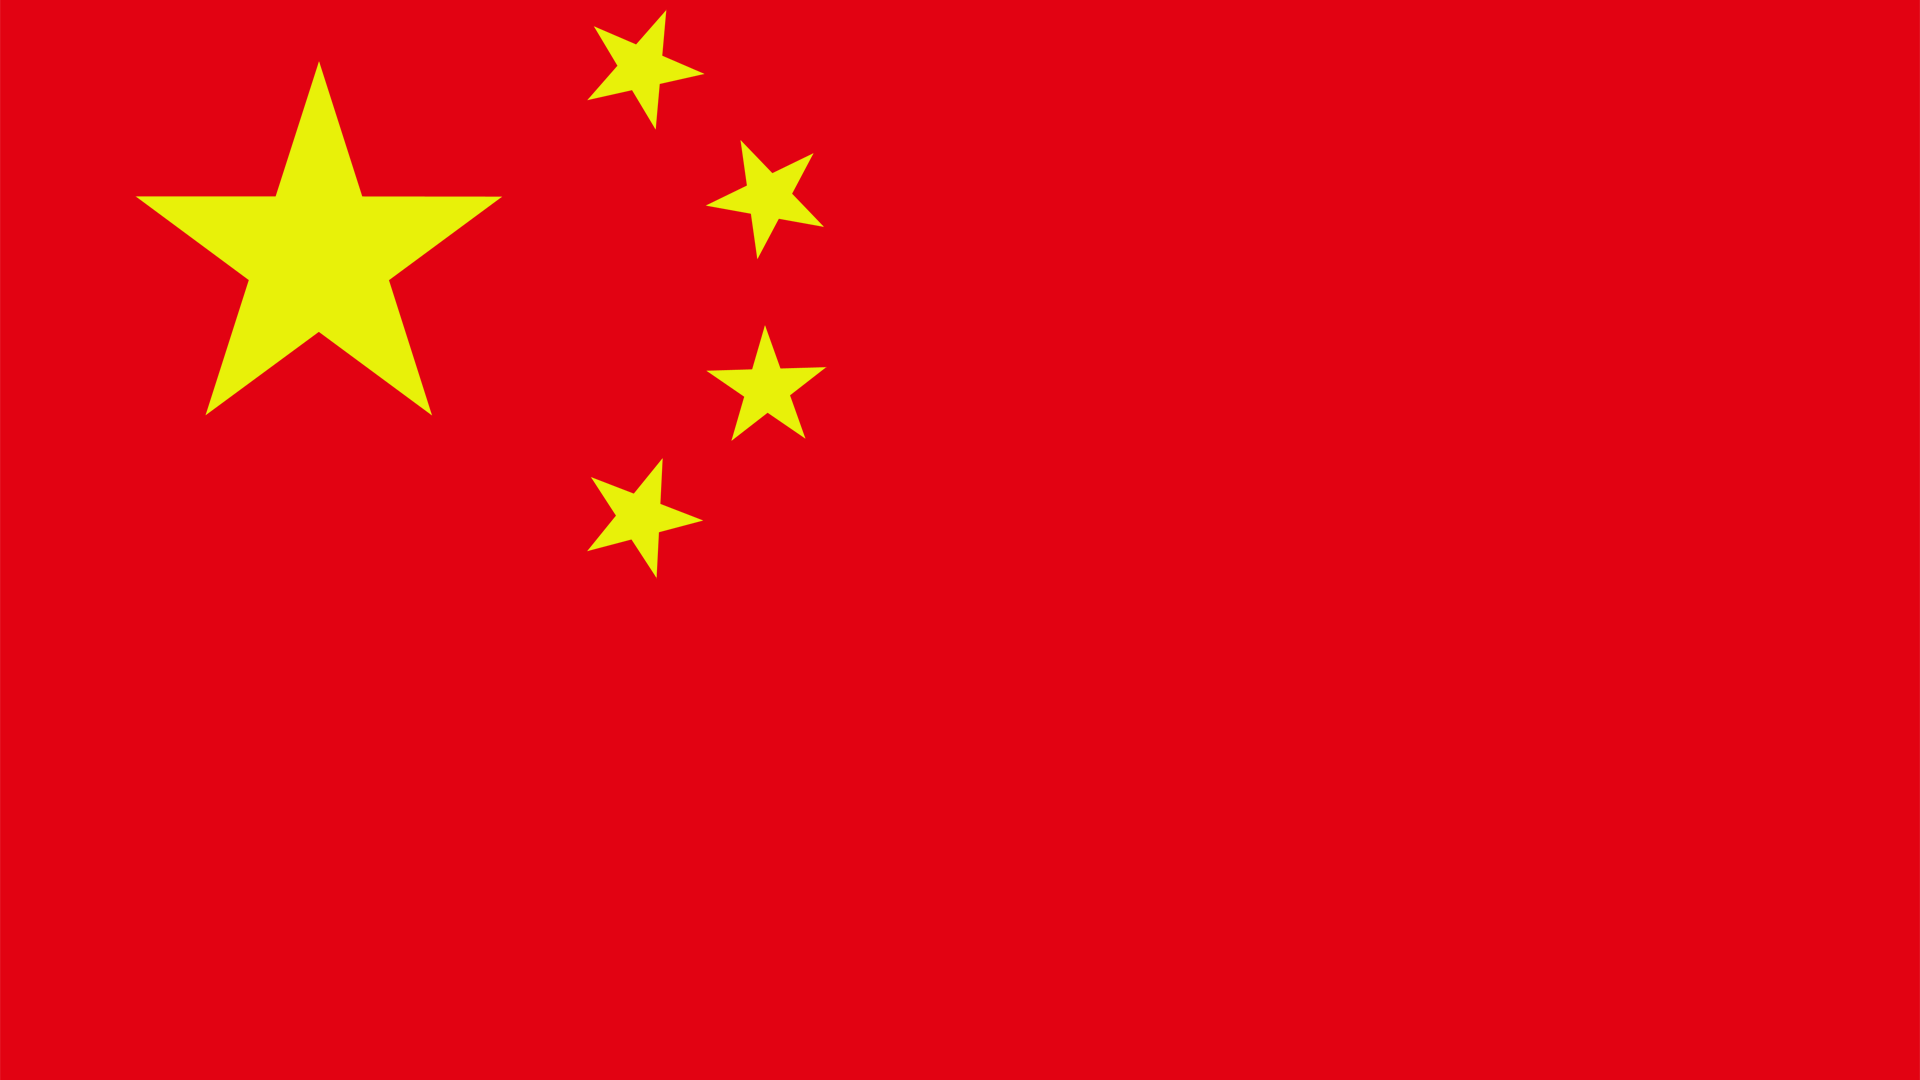 quality china wallpapers countries - photo #37